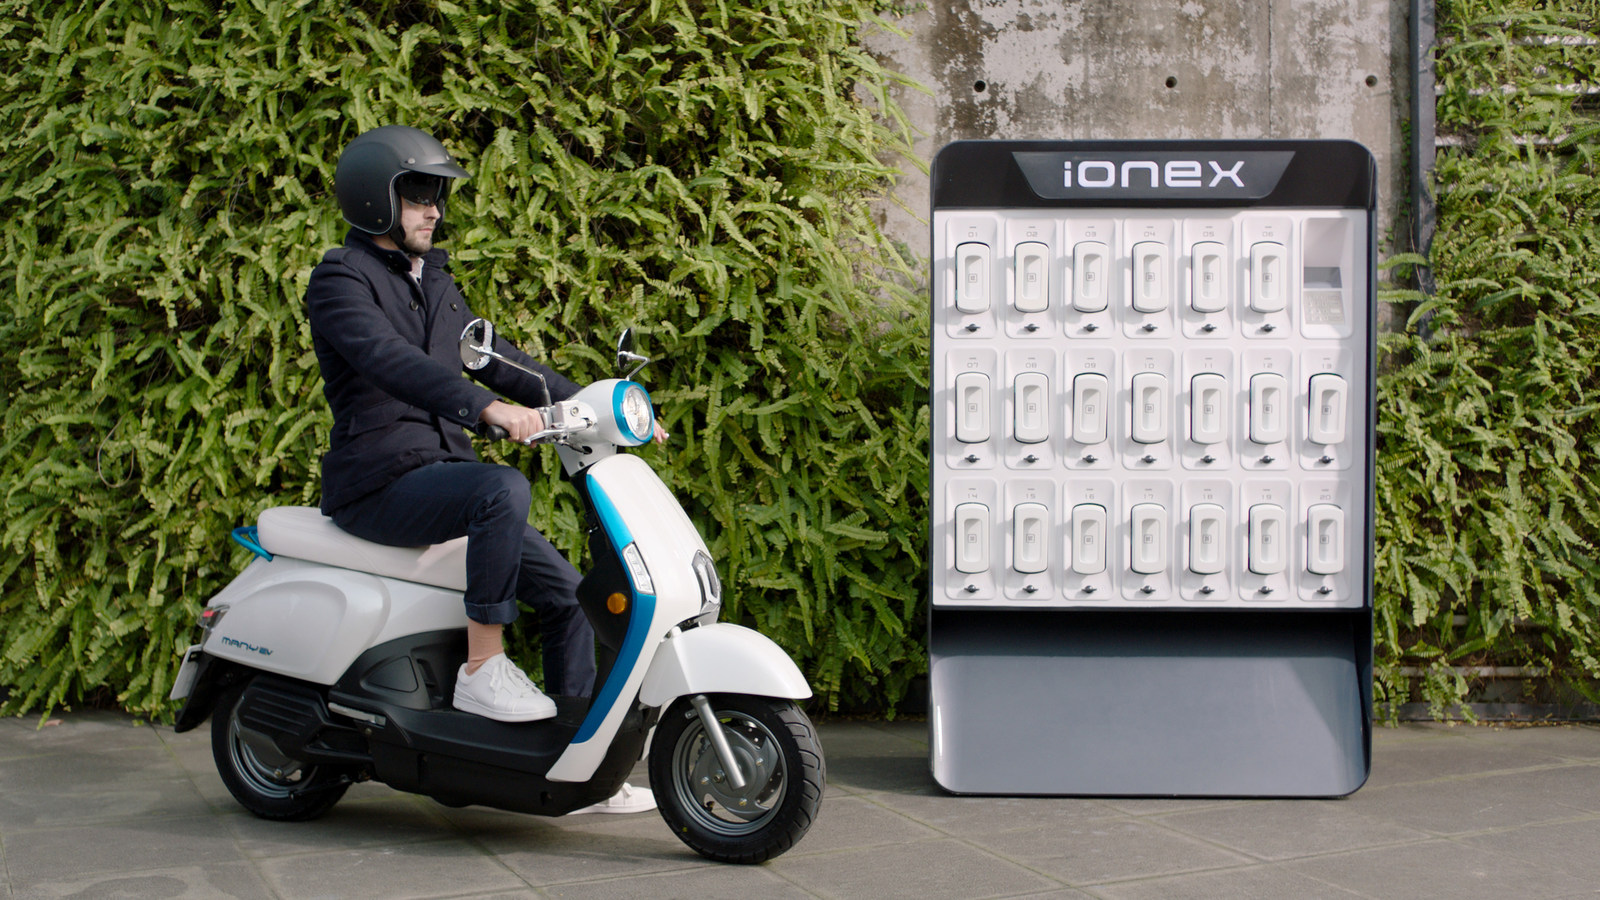 KYMCO Ionex Electric Scooter - Electric Vehicle Solution